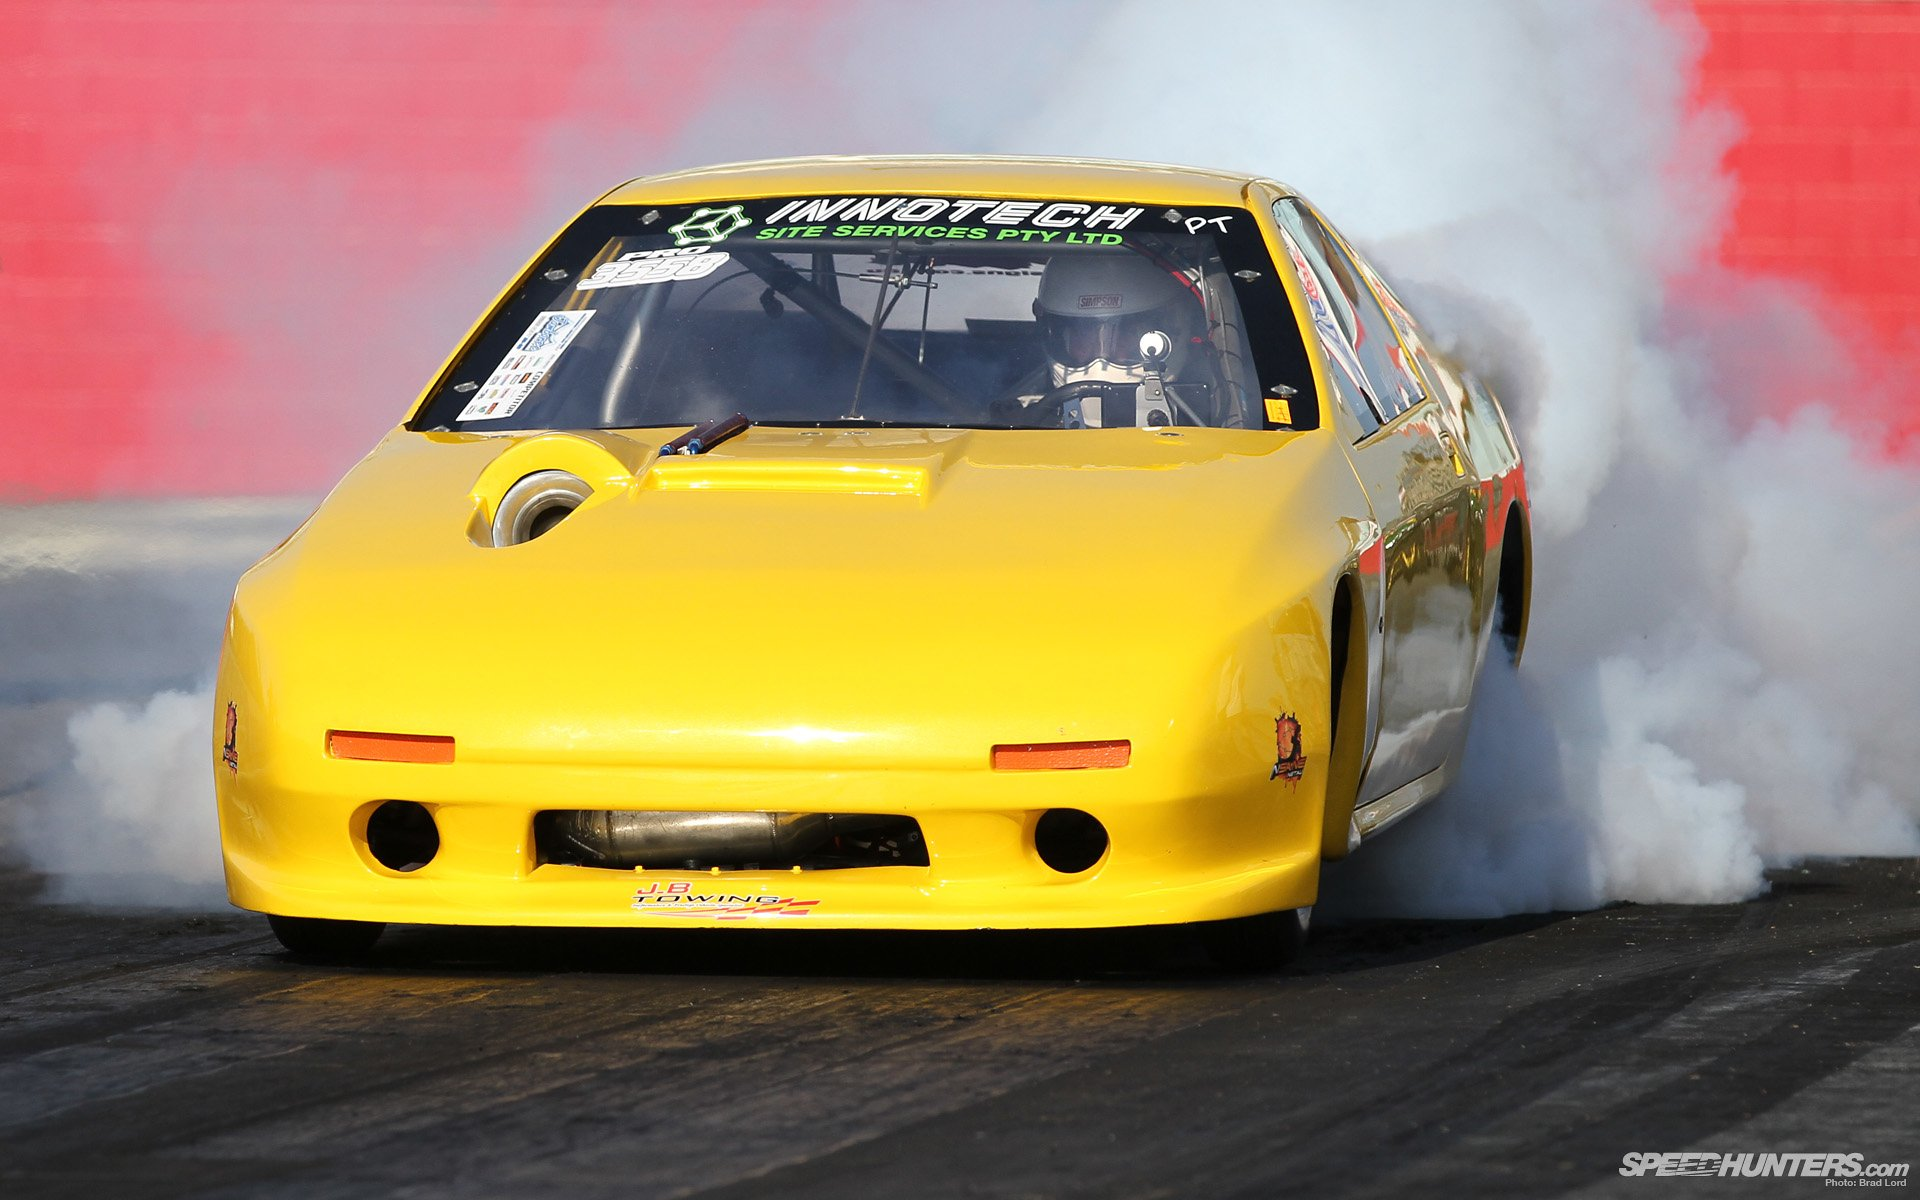 Vehicles - Drag Racing  Mazda Race Car Drag Race Burnout Wallpaper